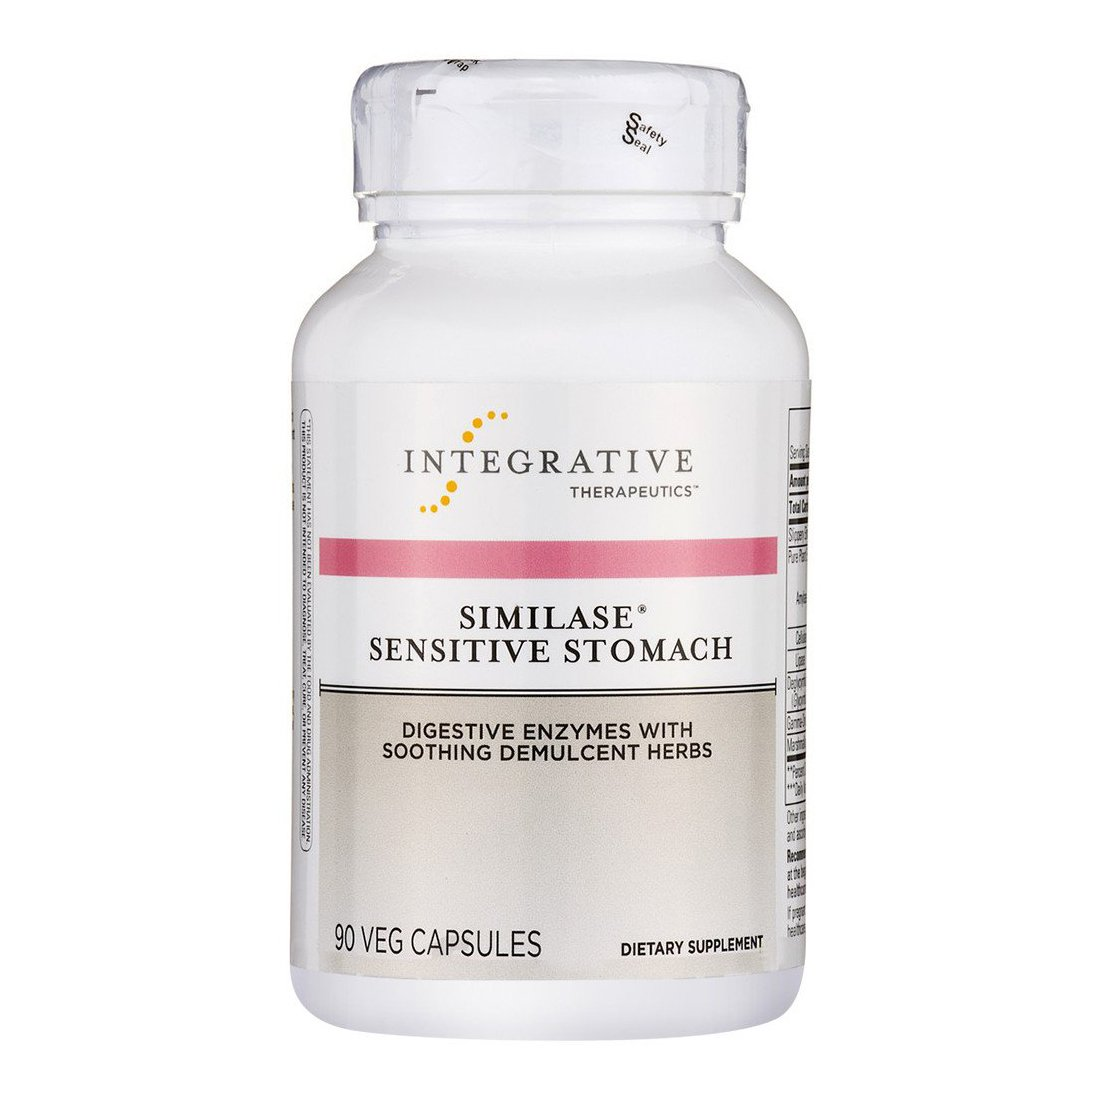 Similase Sensitive Stomach